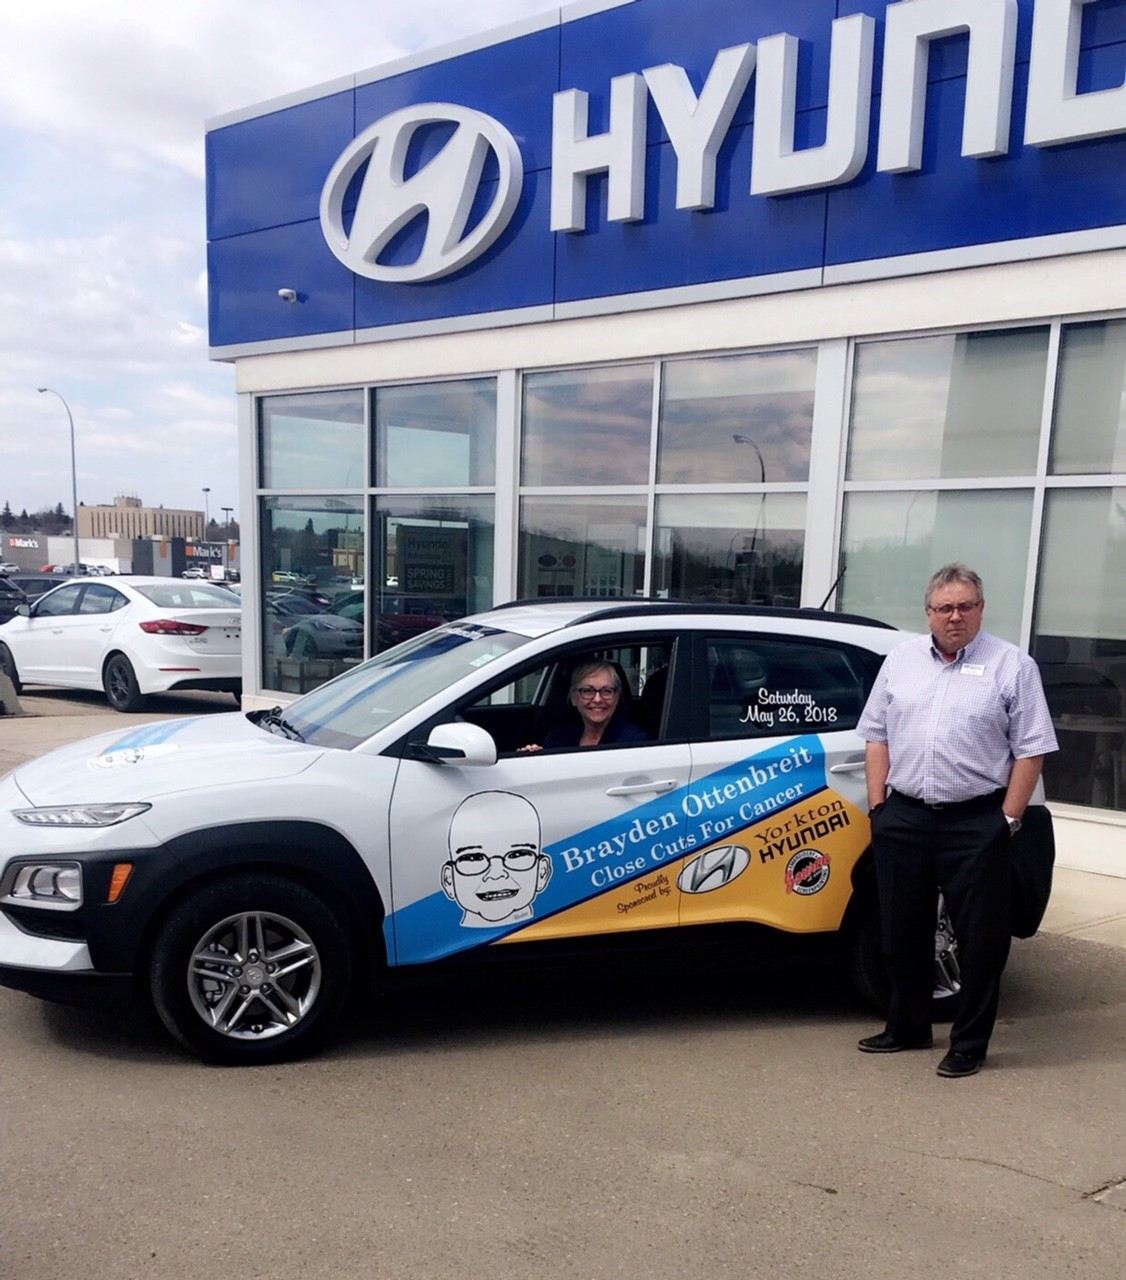 Close Cuts for Cancer Receives New Car